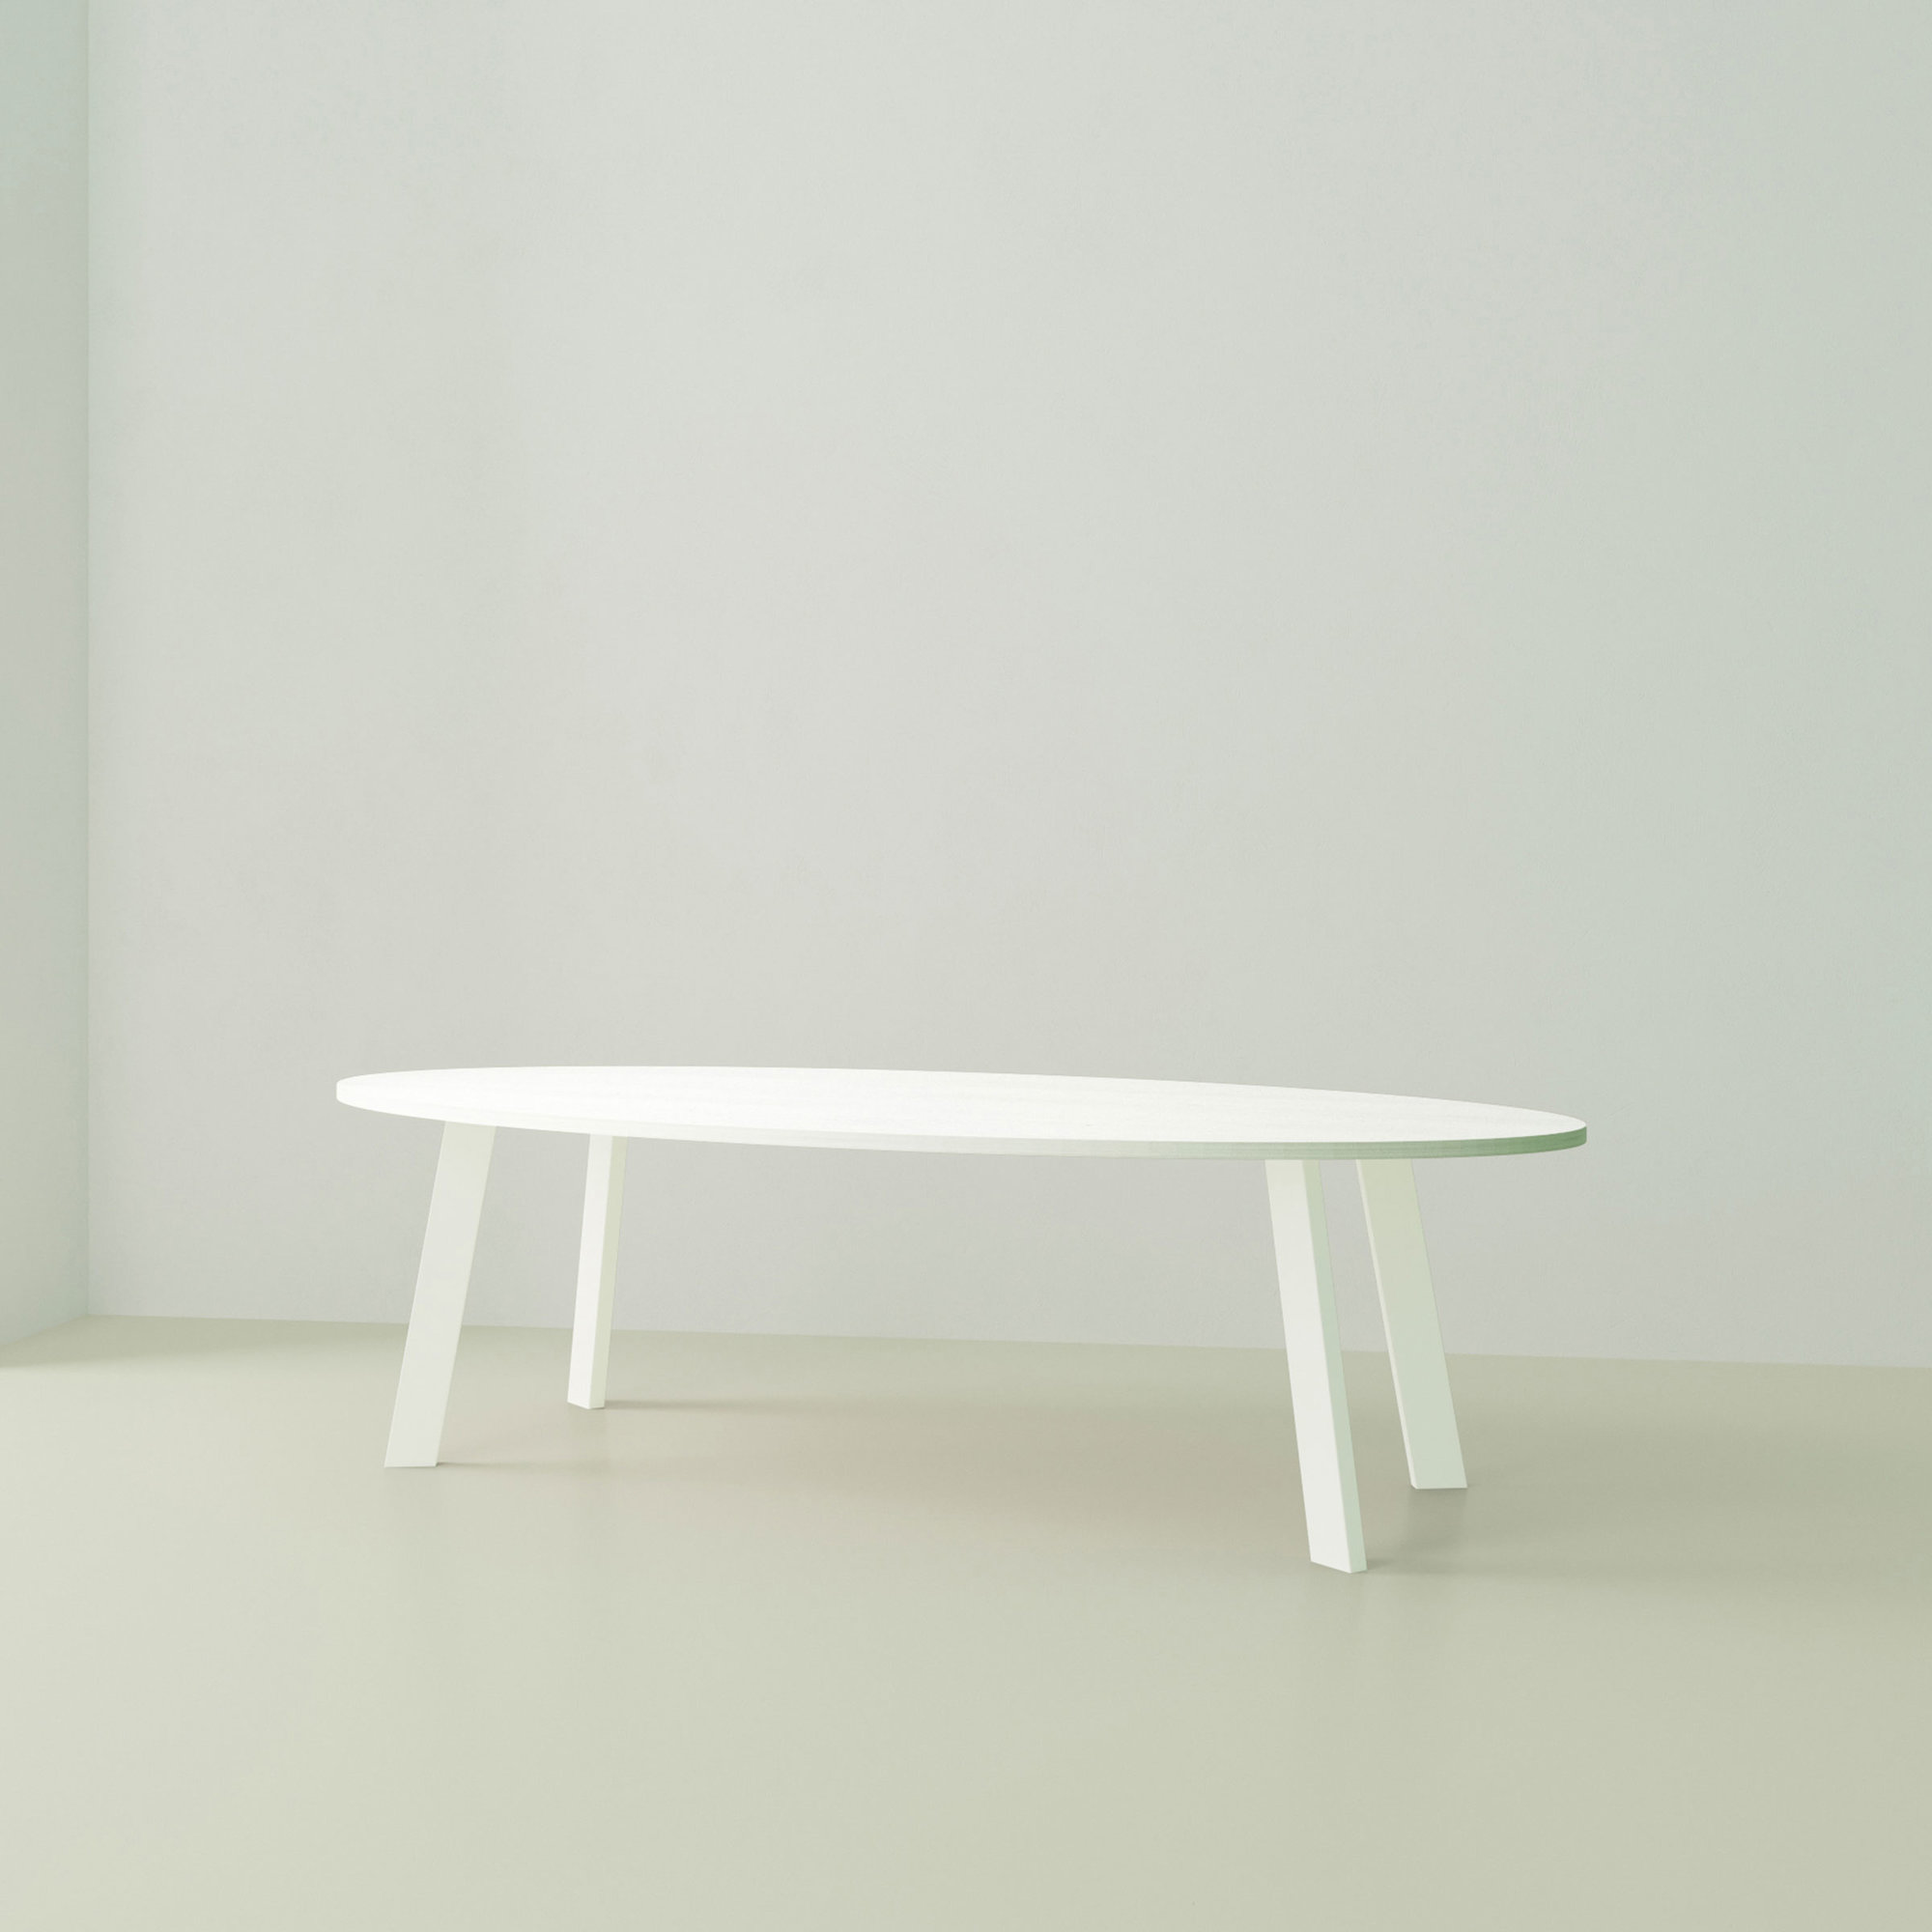 Ovale design tafel op maat | New Co Steel white powdercoating | Oak white lacquer | Studio HENK | Listing_image